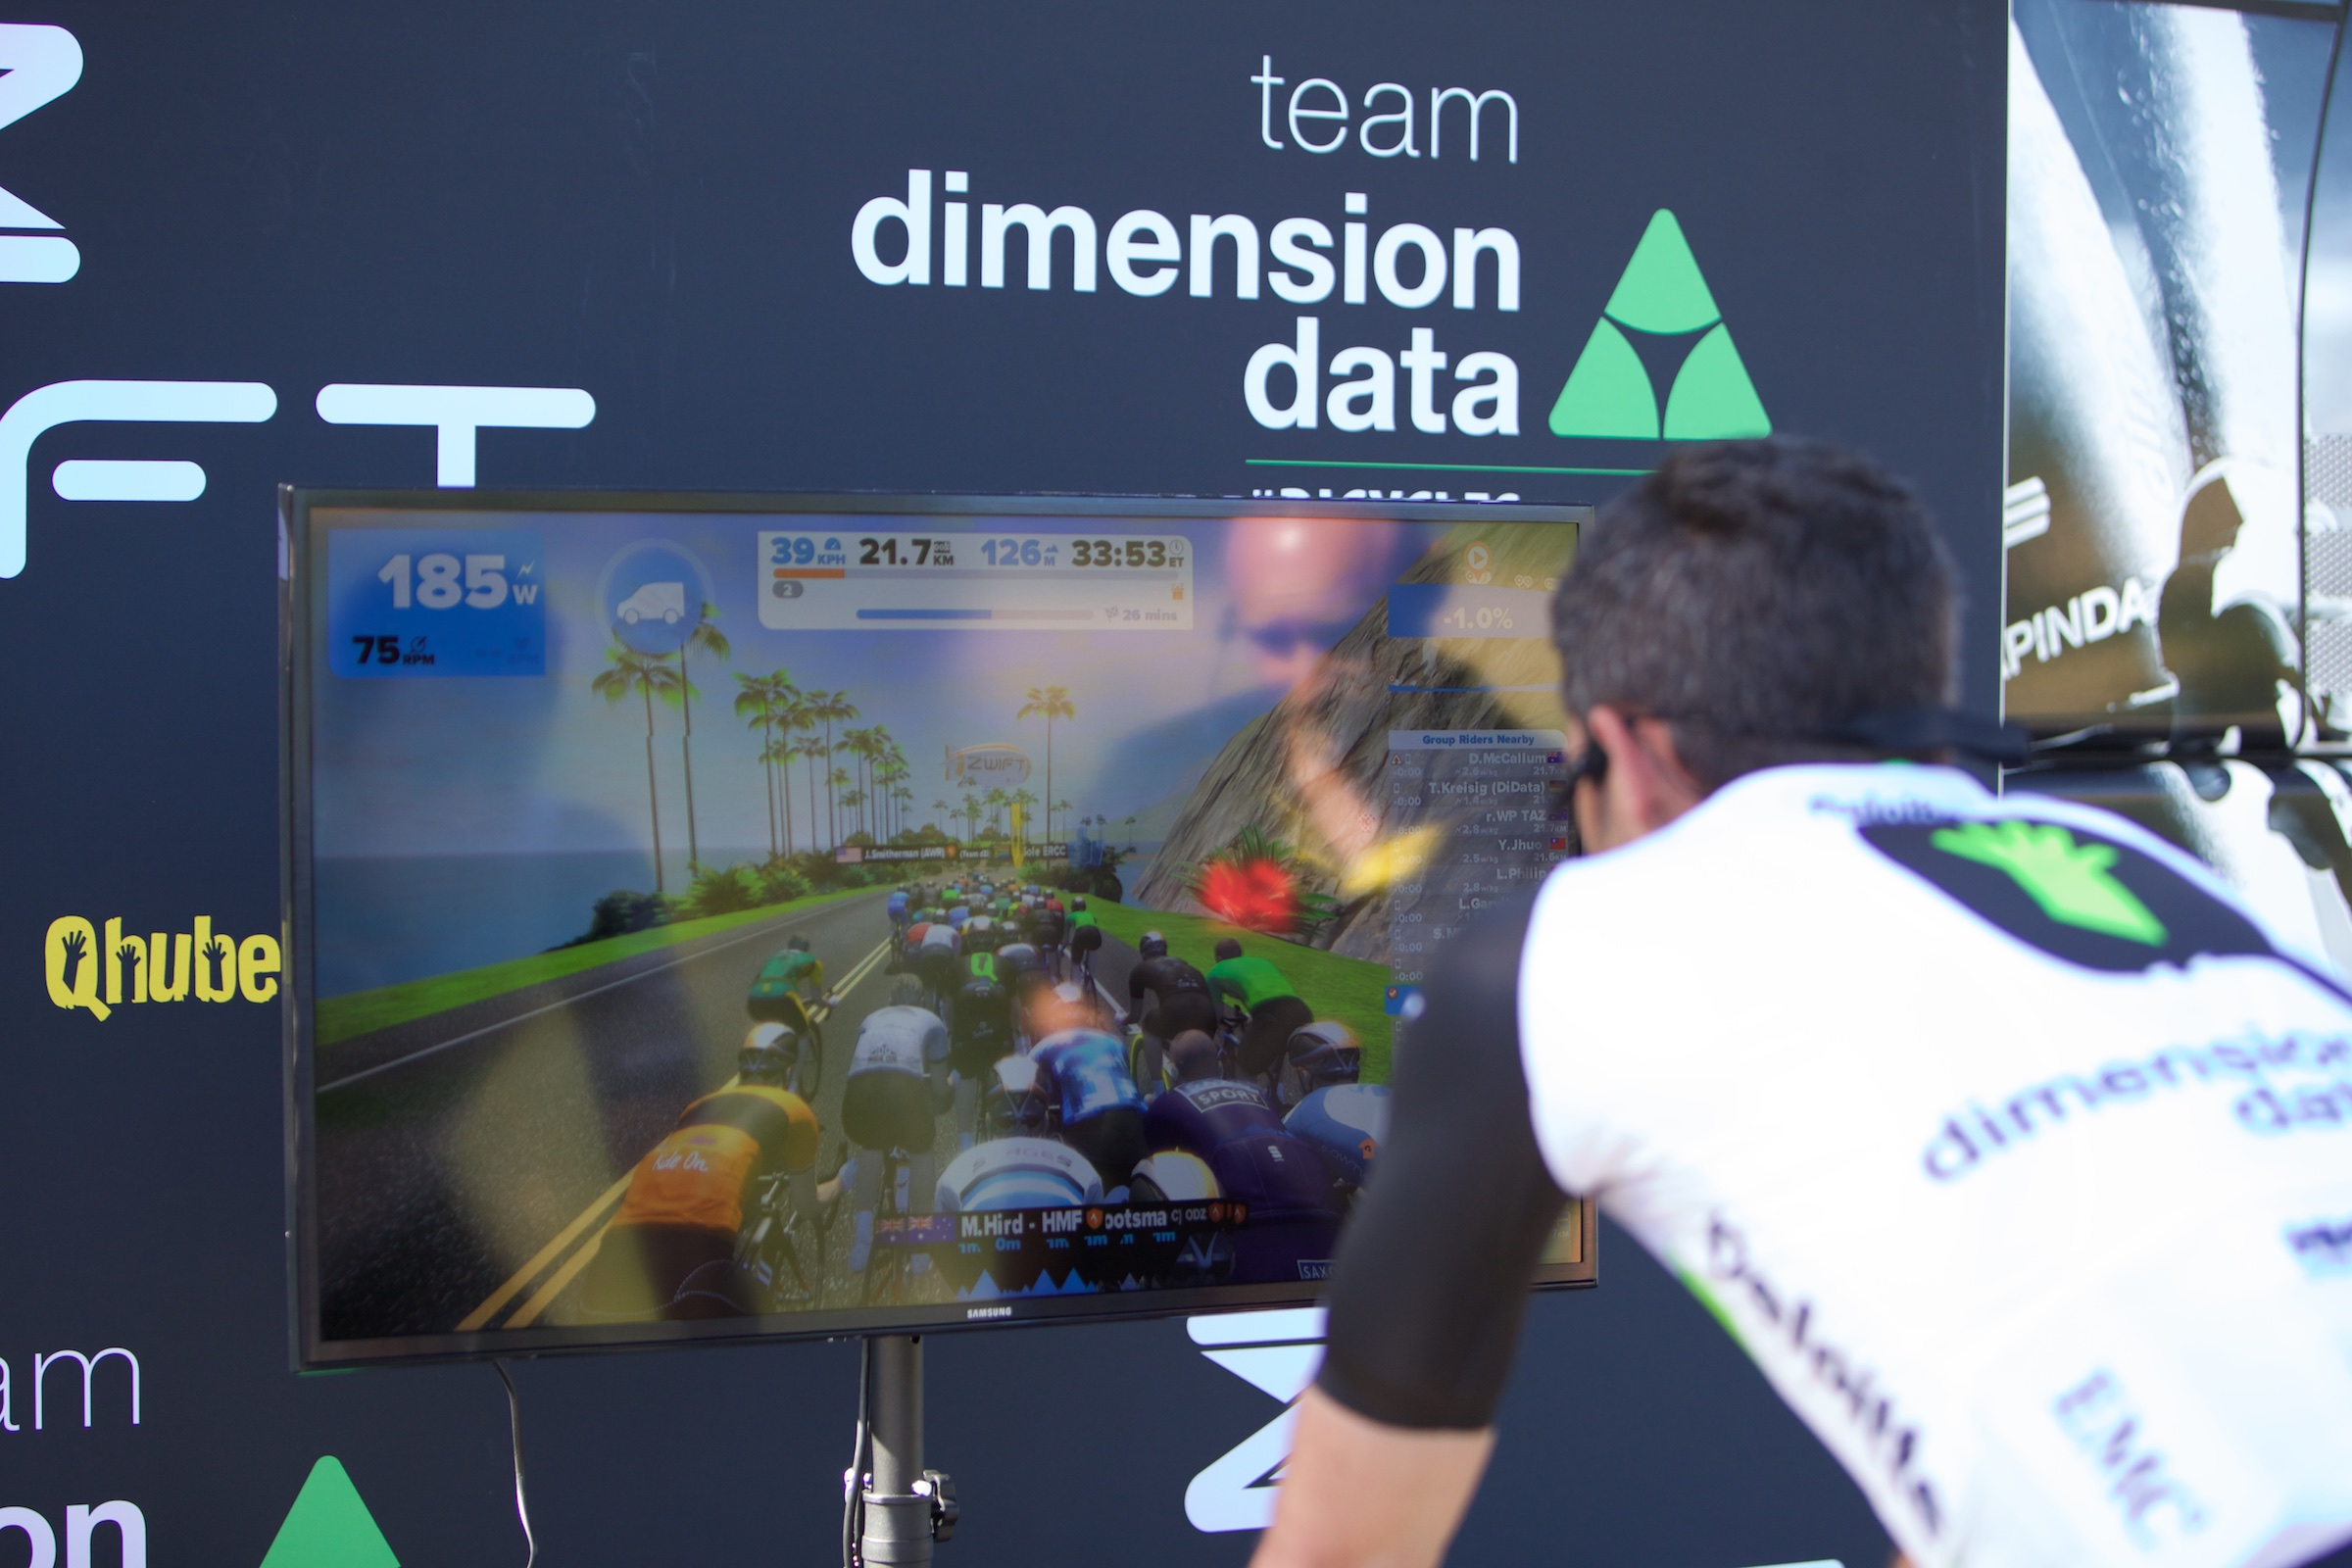 The partnership was launched at the Tour de France rest day in Berne